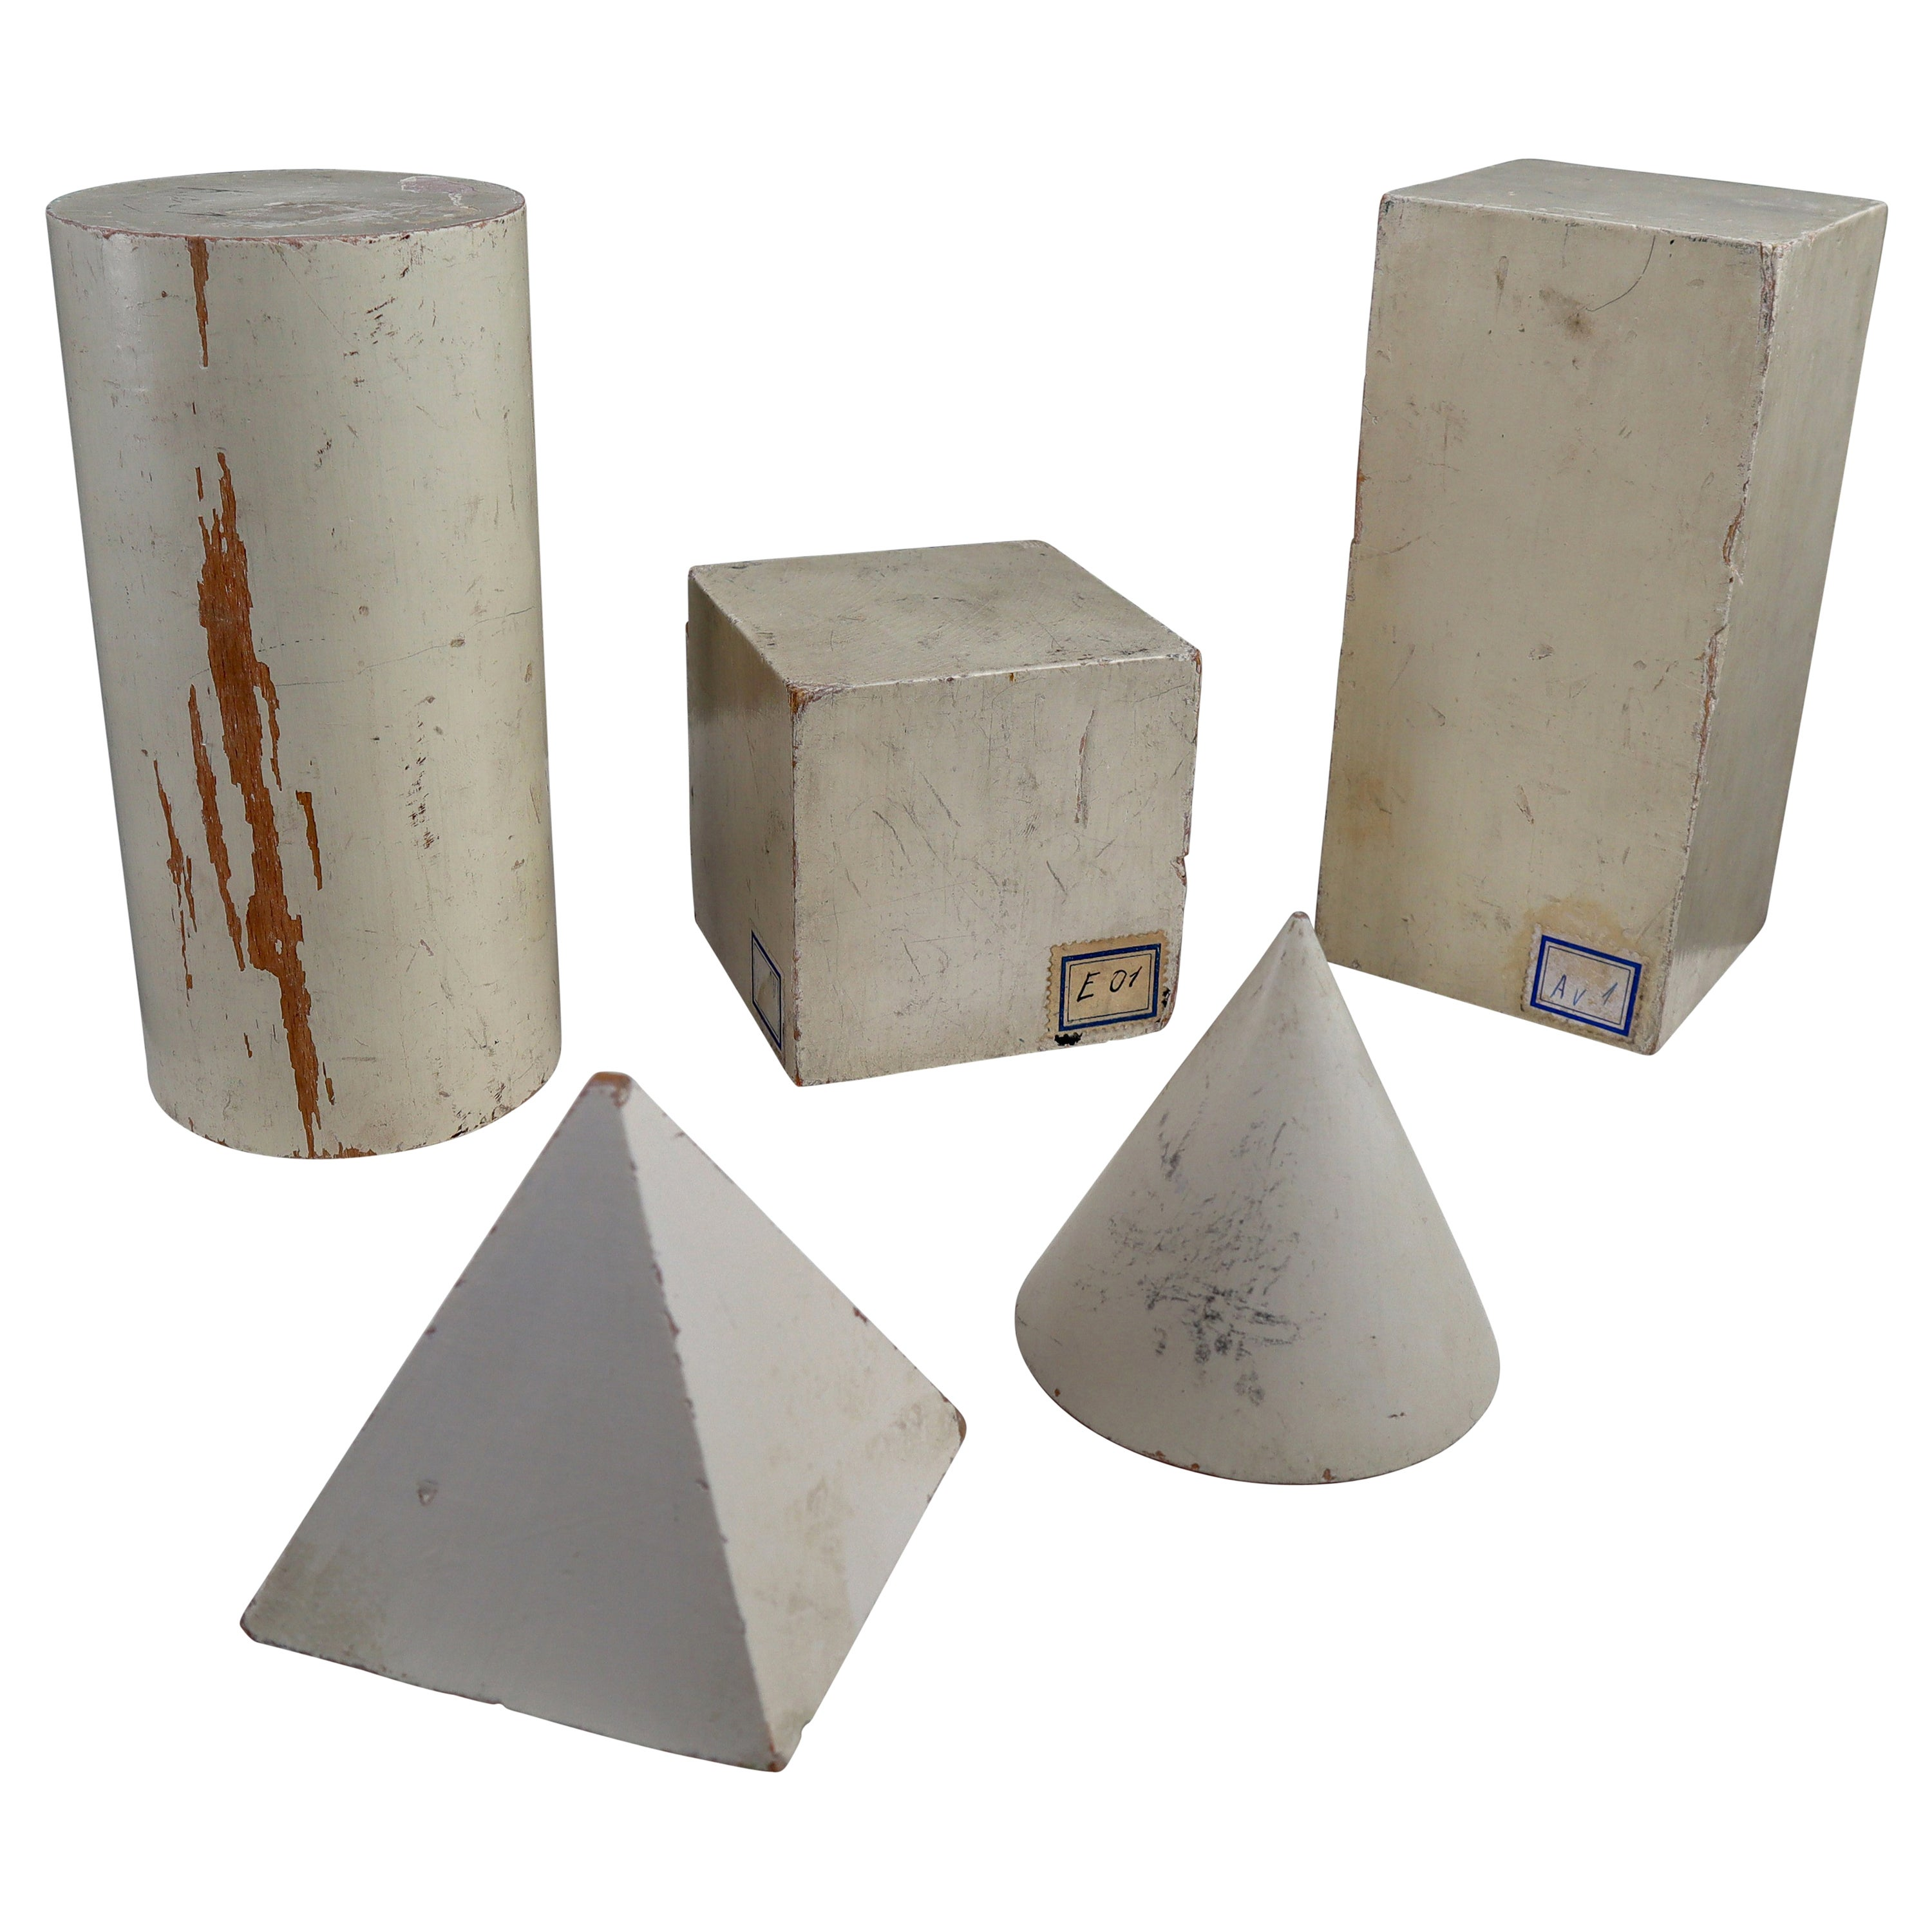 Set of Painted White Patinated Wooden Geometric Models/Sculptures, Vienna 1950s